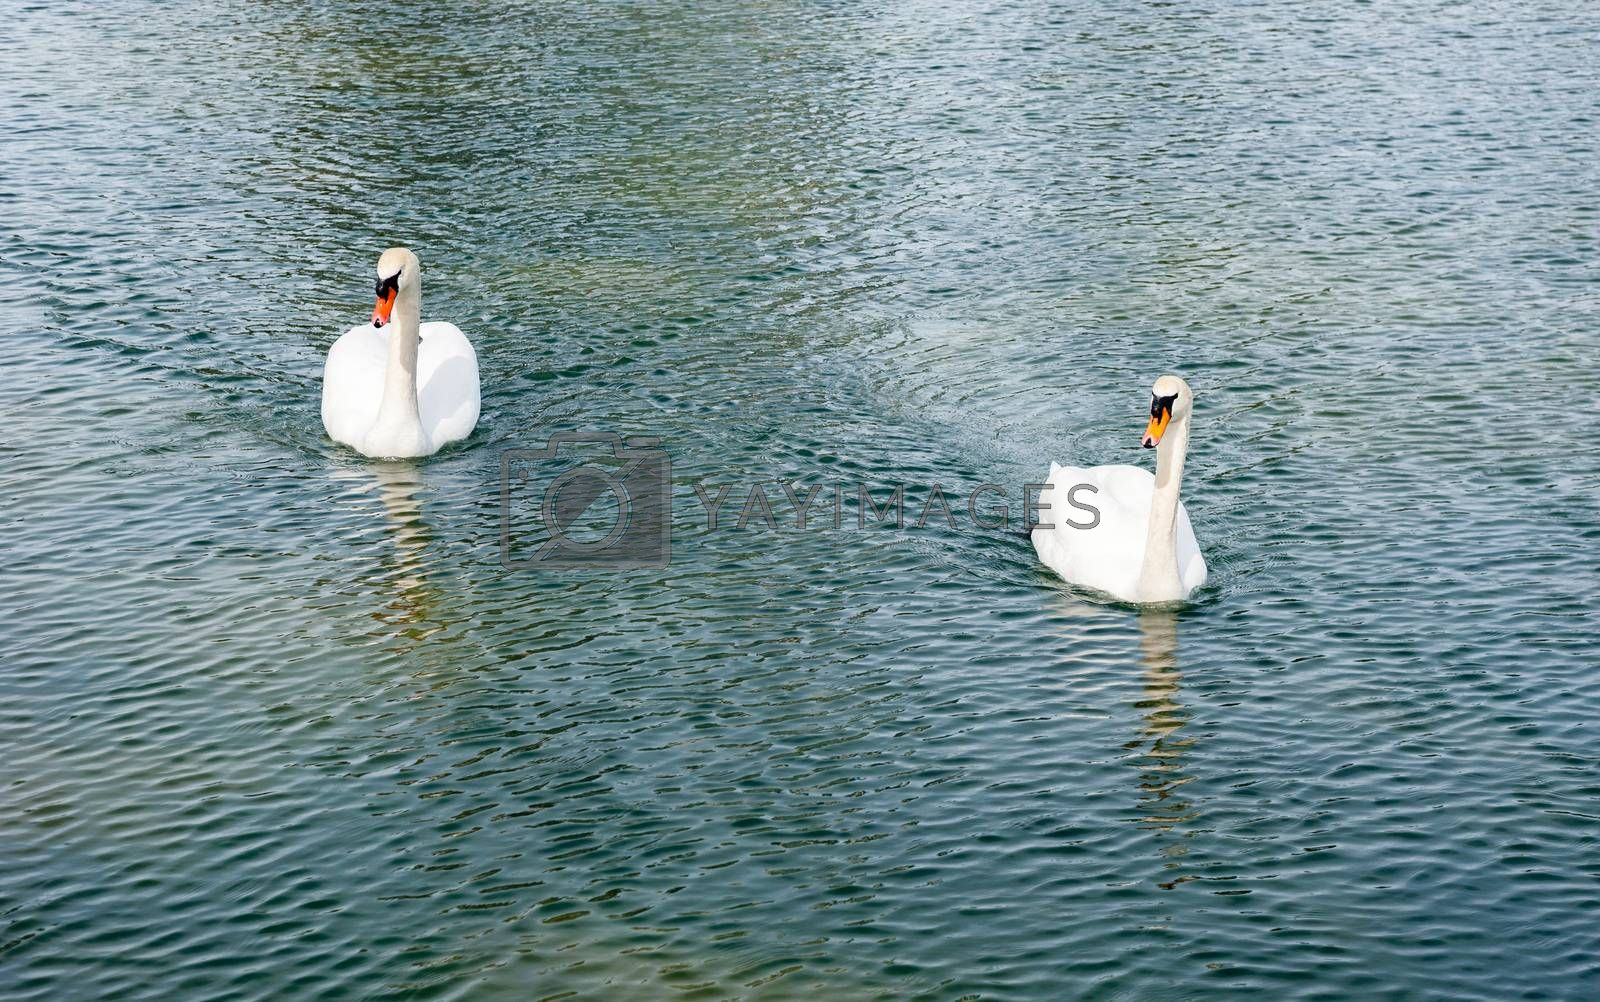 Two adult mute swans approaching on rippled wavy pond water.